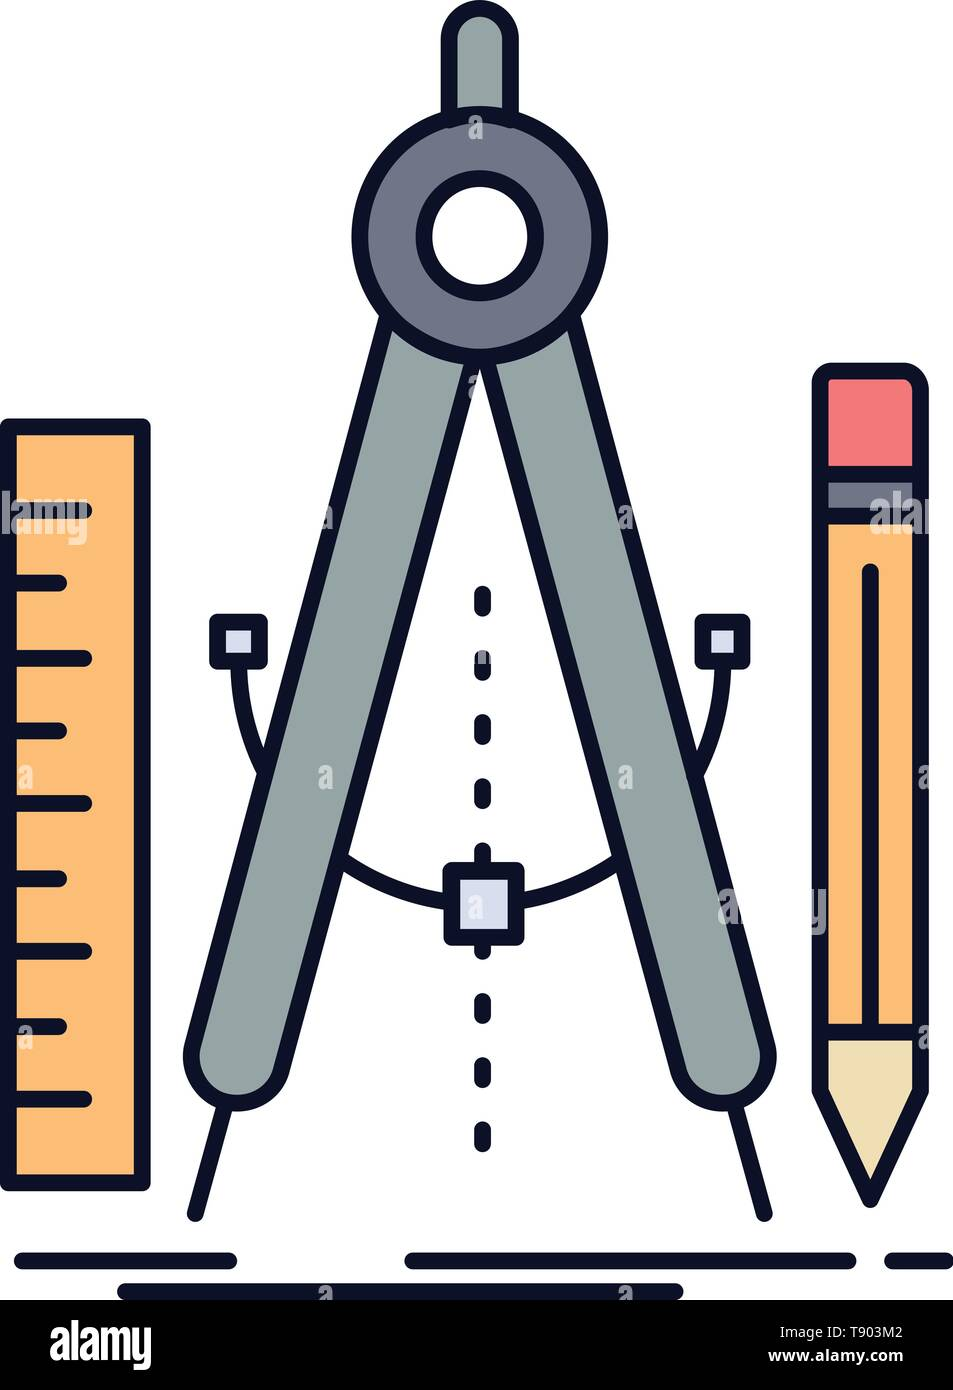 Build, design, geometry, math, tool Flat Color Icon Vector - Stock Vector